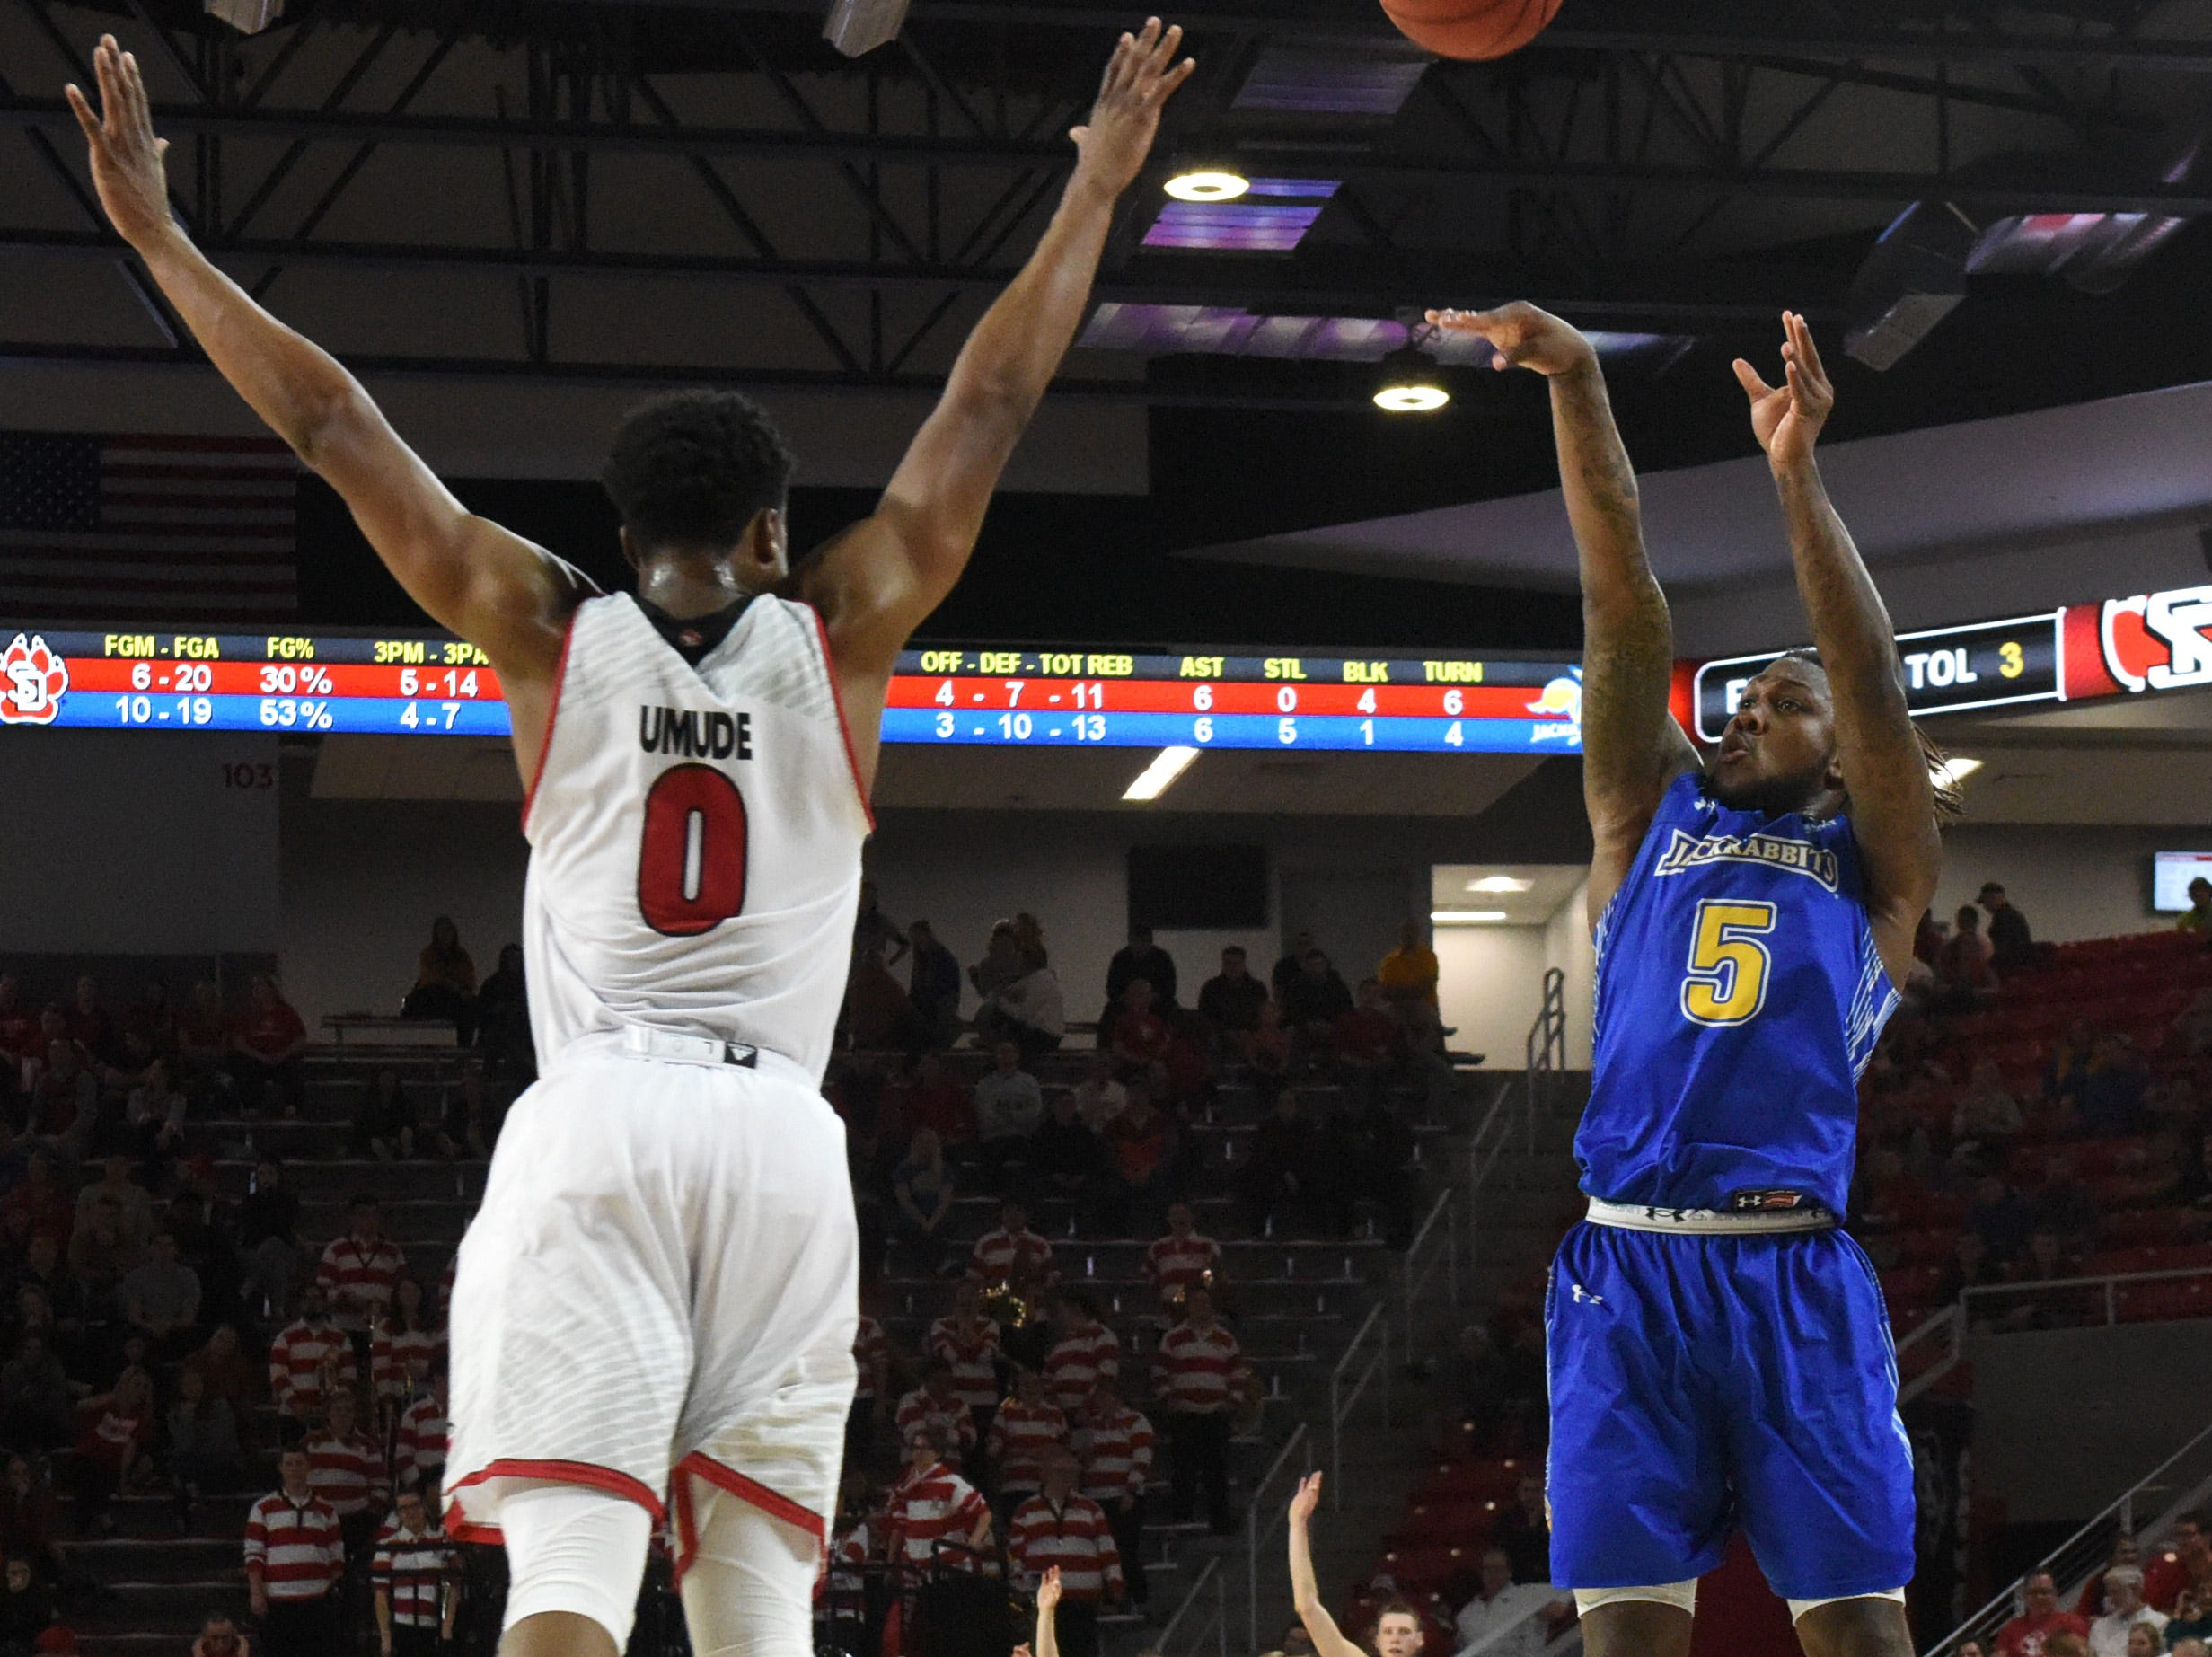 SDSU's David Jenkins (5) shoots the ball over USD's Stanley Umude (0) during a game, Sunday, Jan. 6, 2019 in Vermillion, S.D.